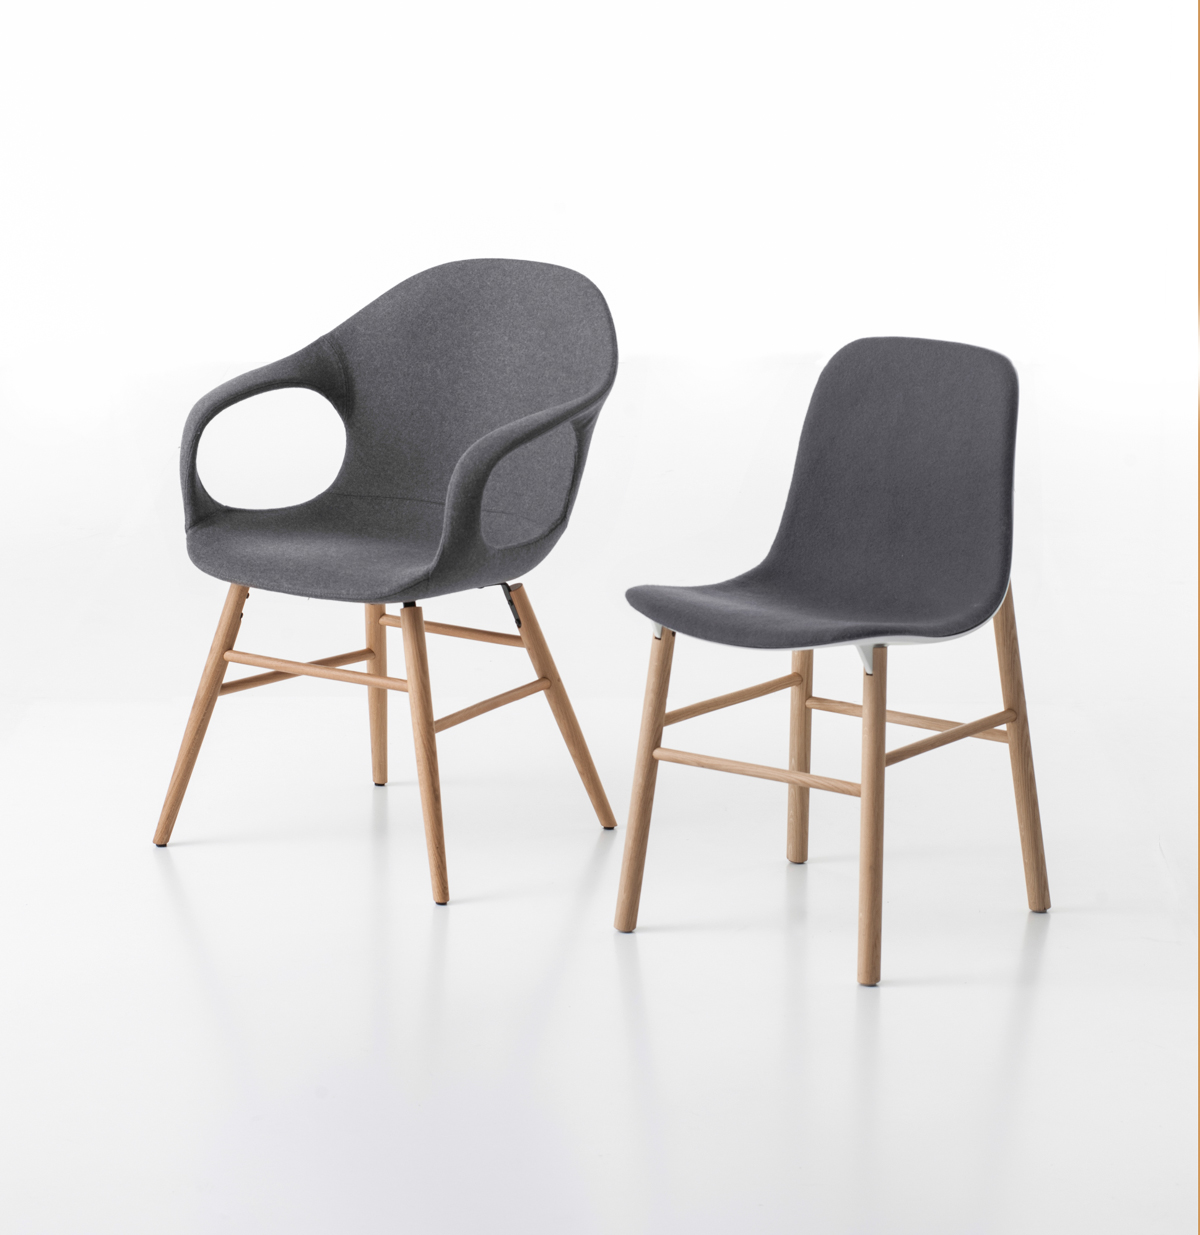 Sedia Job Video Two New Chairs From Kristalia Design Milk